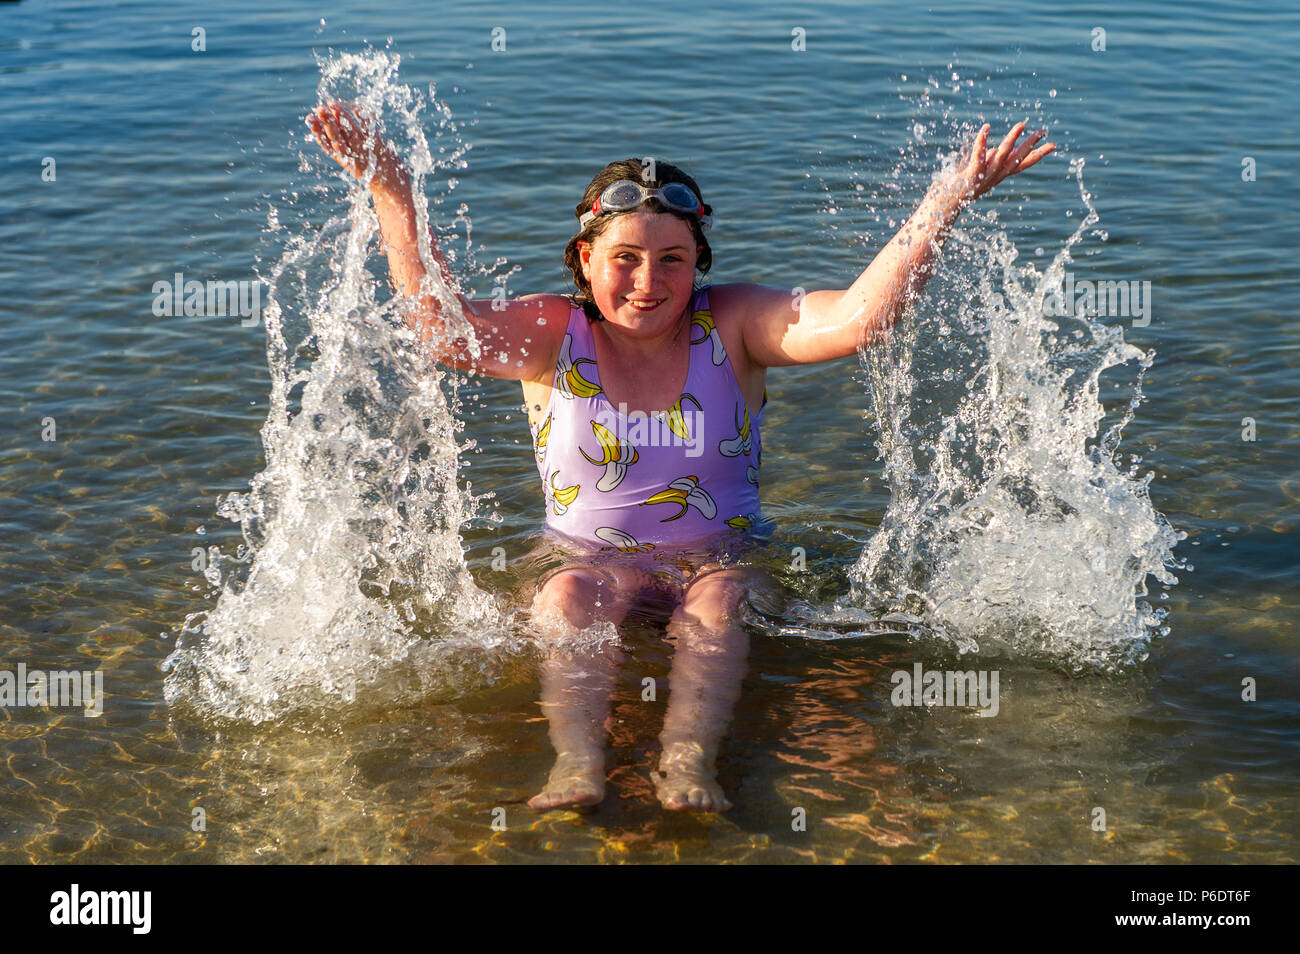 Bantry, West Cork, Ireland. 29th June, 2018. After a scorchingly hot day, 11 year old Nora Fox from Bantry plays in the water as the sun goes down in Bantry. The rest of the weekend will be cooler than previous days with rain forecast for next week. Credit: Andy Gibson/Alamy Live News. - Stock Image